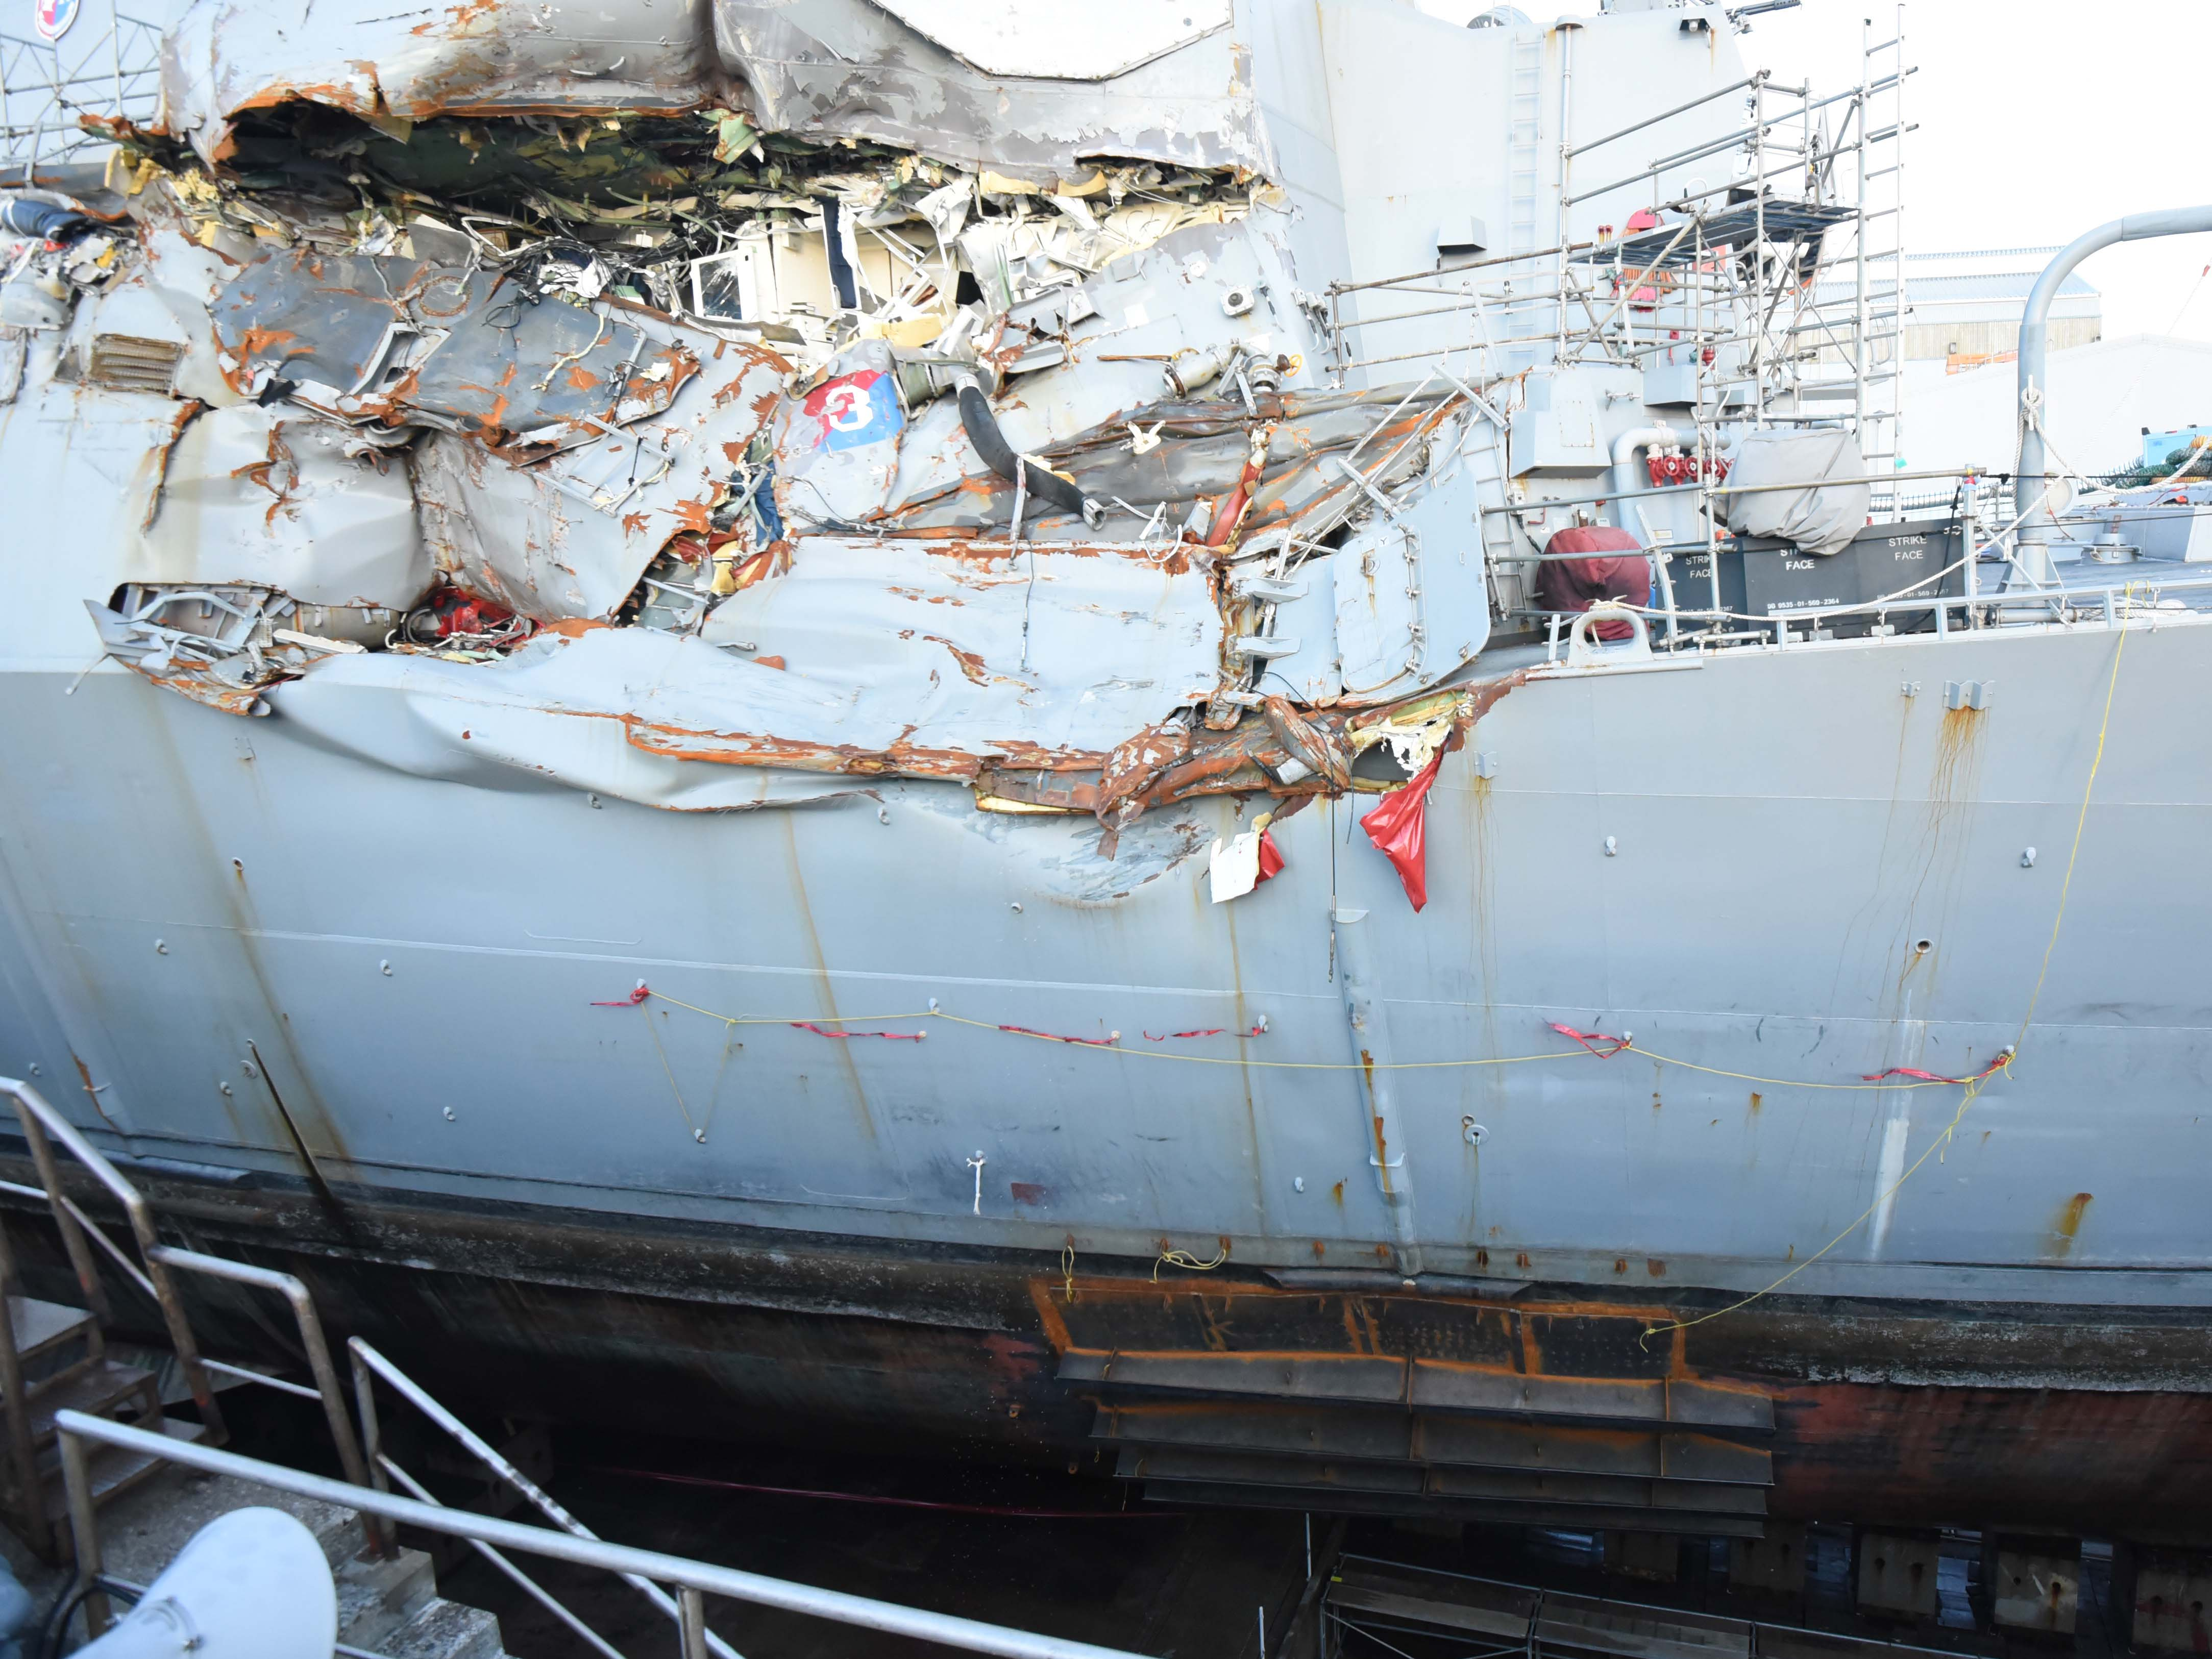 Collision destroyer USS Fitzgerald avec un navire marchand ! - Page 6 35501057600_f0defe0c41_o